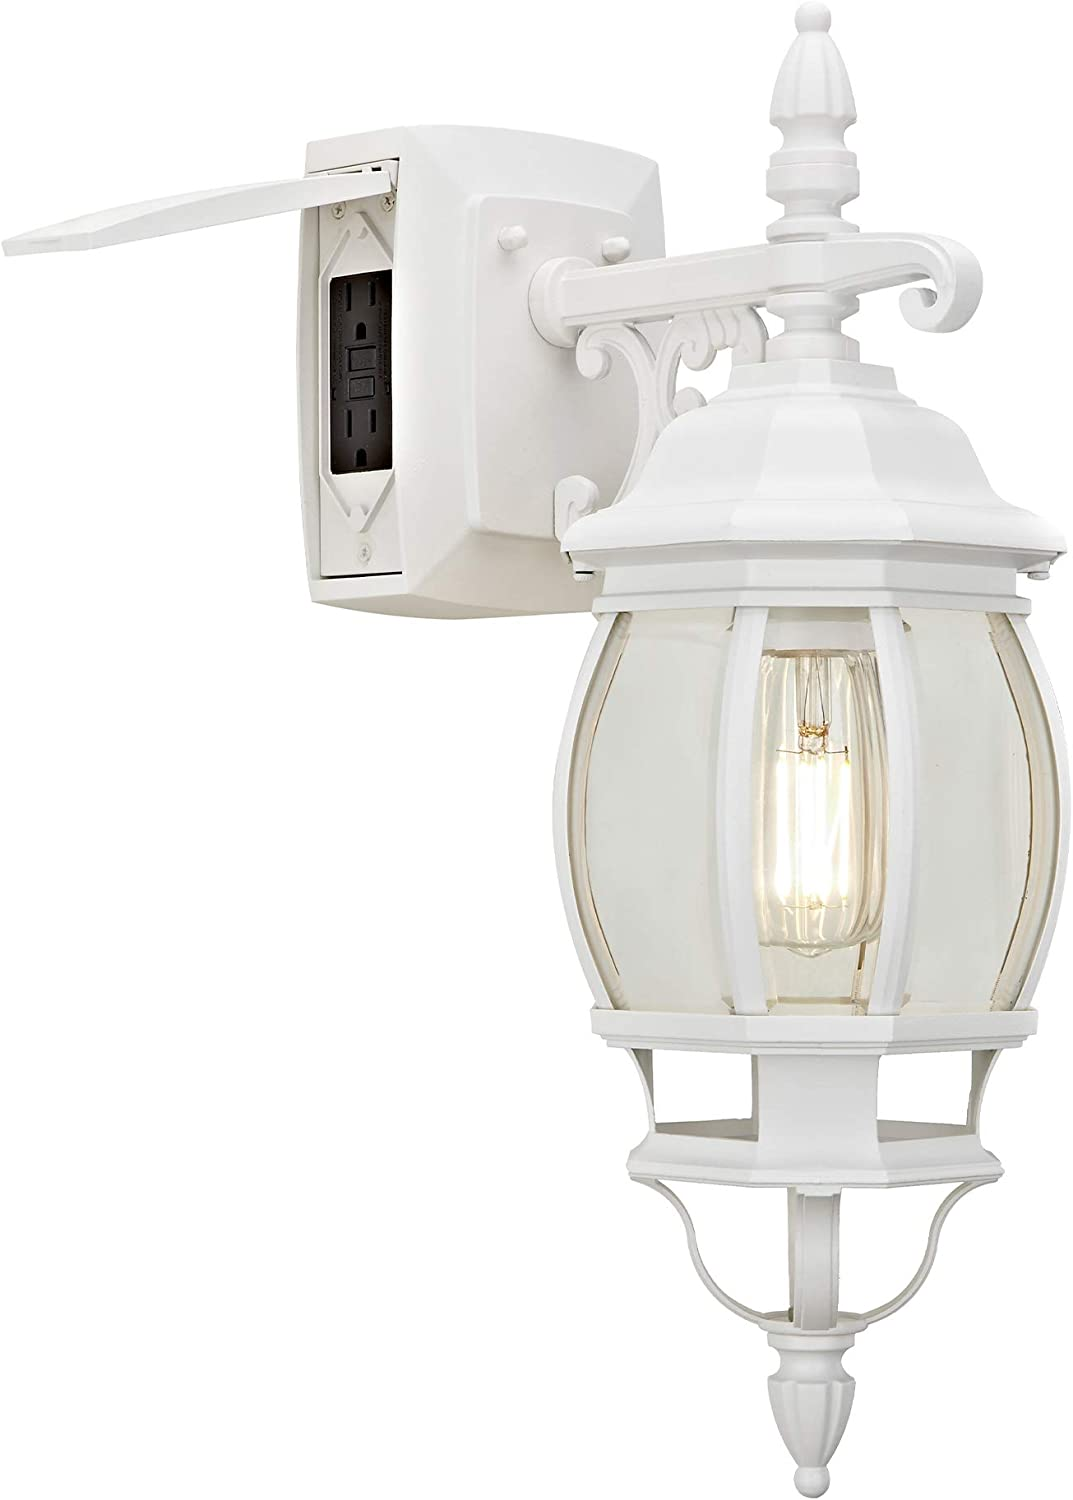 Sunbeam 16891 1 Light Outdoor Wall Sconce With Integrated Gfci Clear Glass White Finish Led Edison Bulb Included Home Improvement